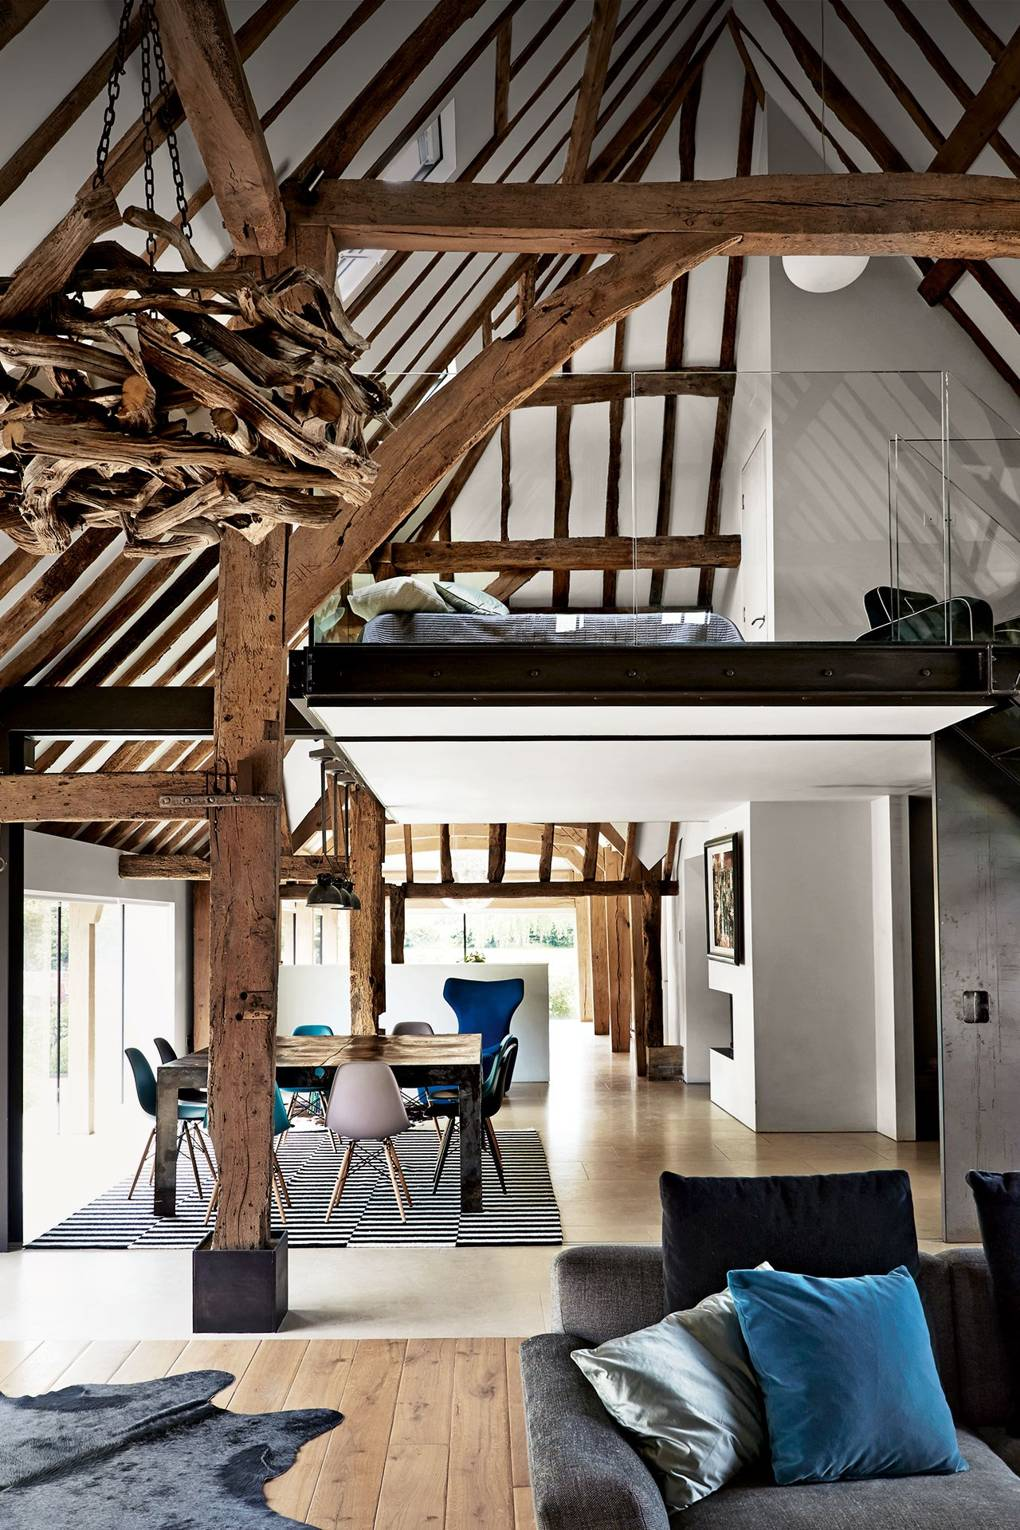 Mezzanine Floor - Mezzanine Level Design | House & Garden